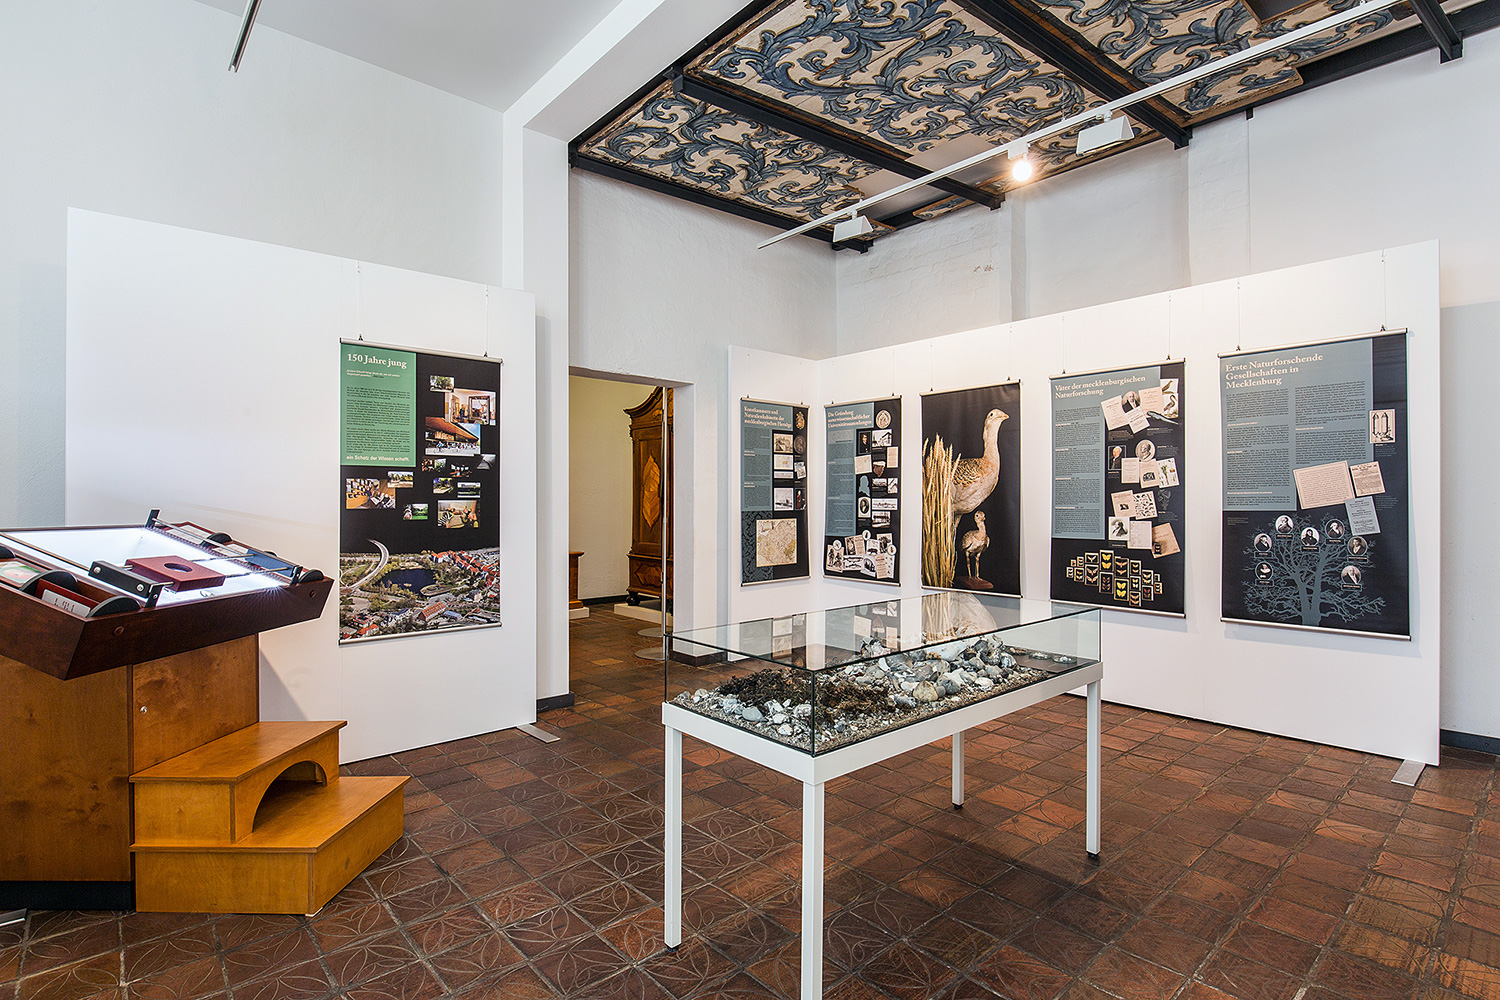 A special exhibition at the Kulturhistorisches Museum in Rostock was equipped with Mila-wall Acoustic.